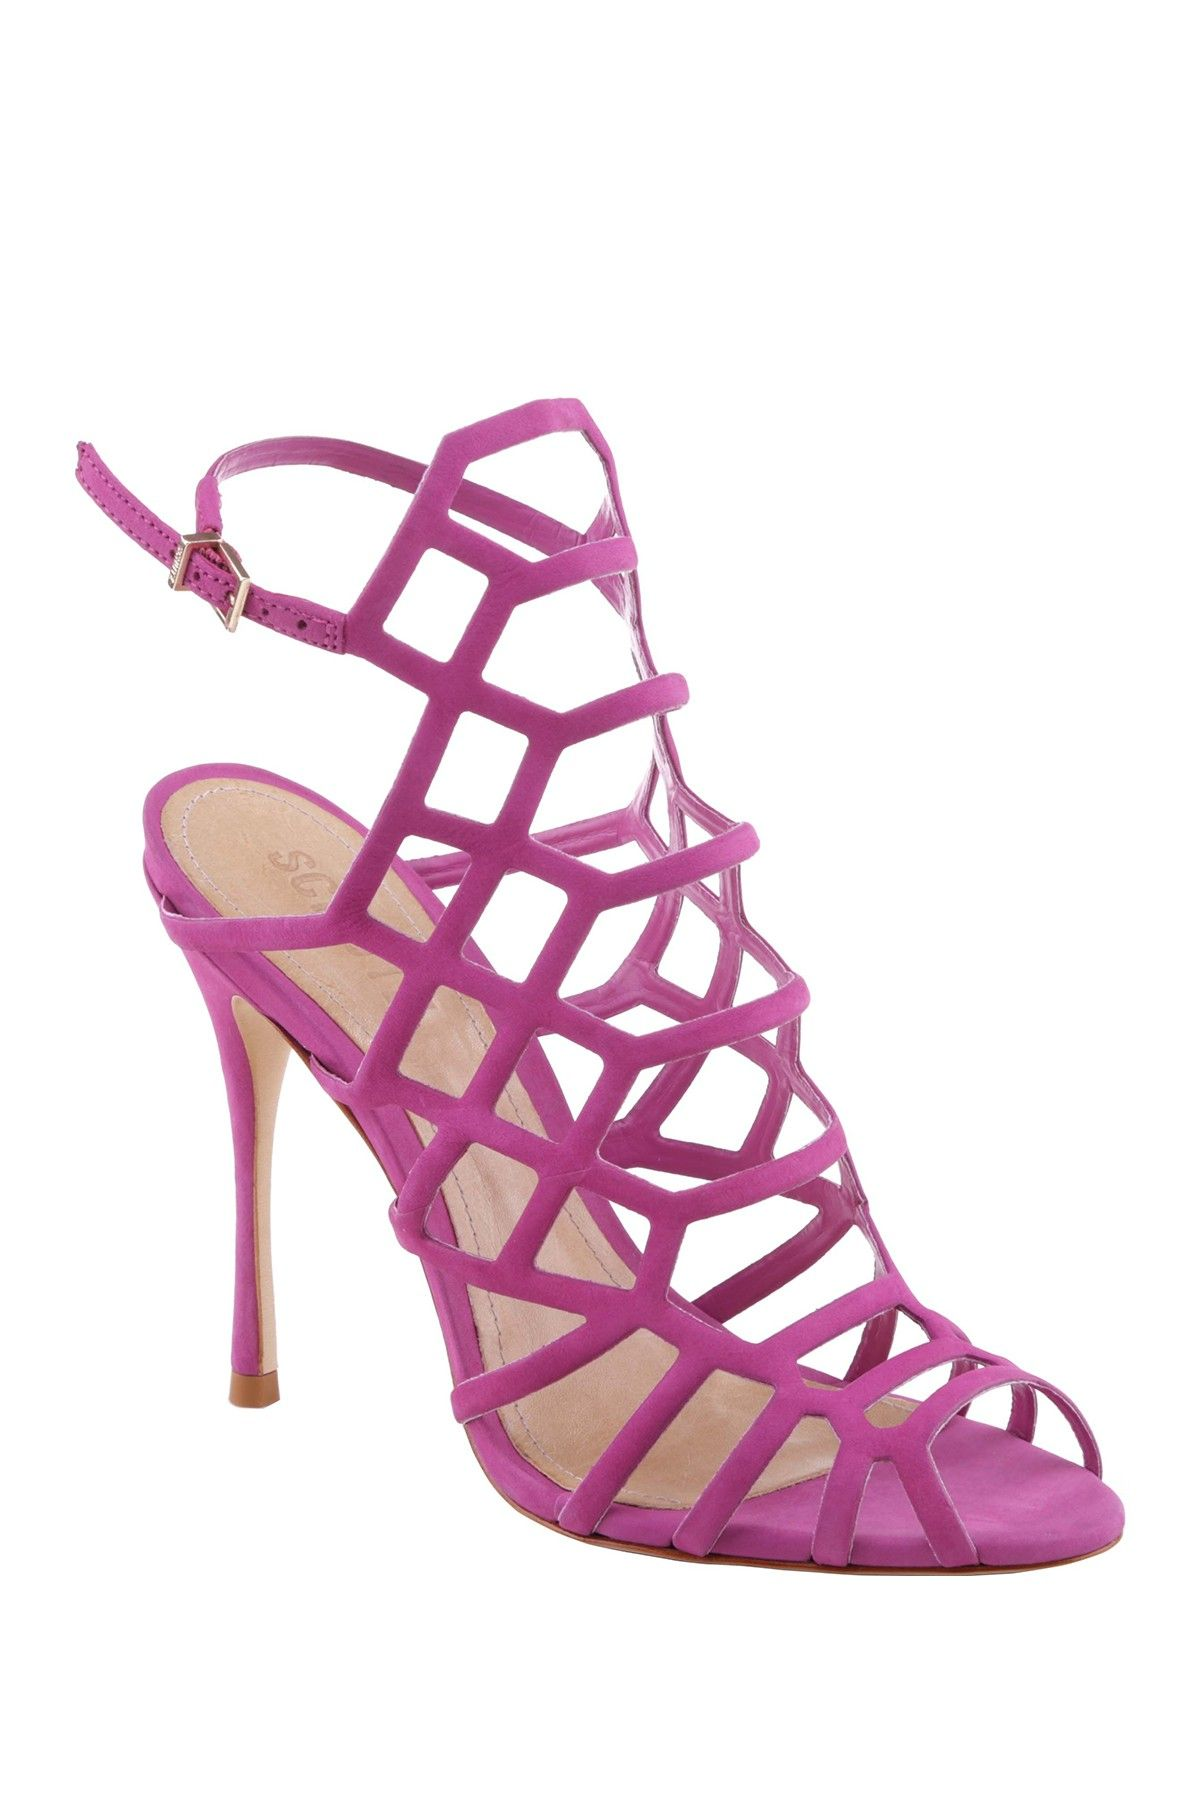 686e21494b Schutz | Juliana Caged Stiletto in 2019 | Let's get some shoes ...